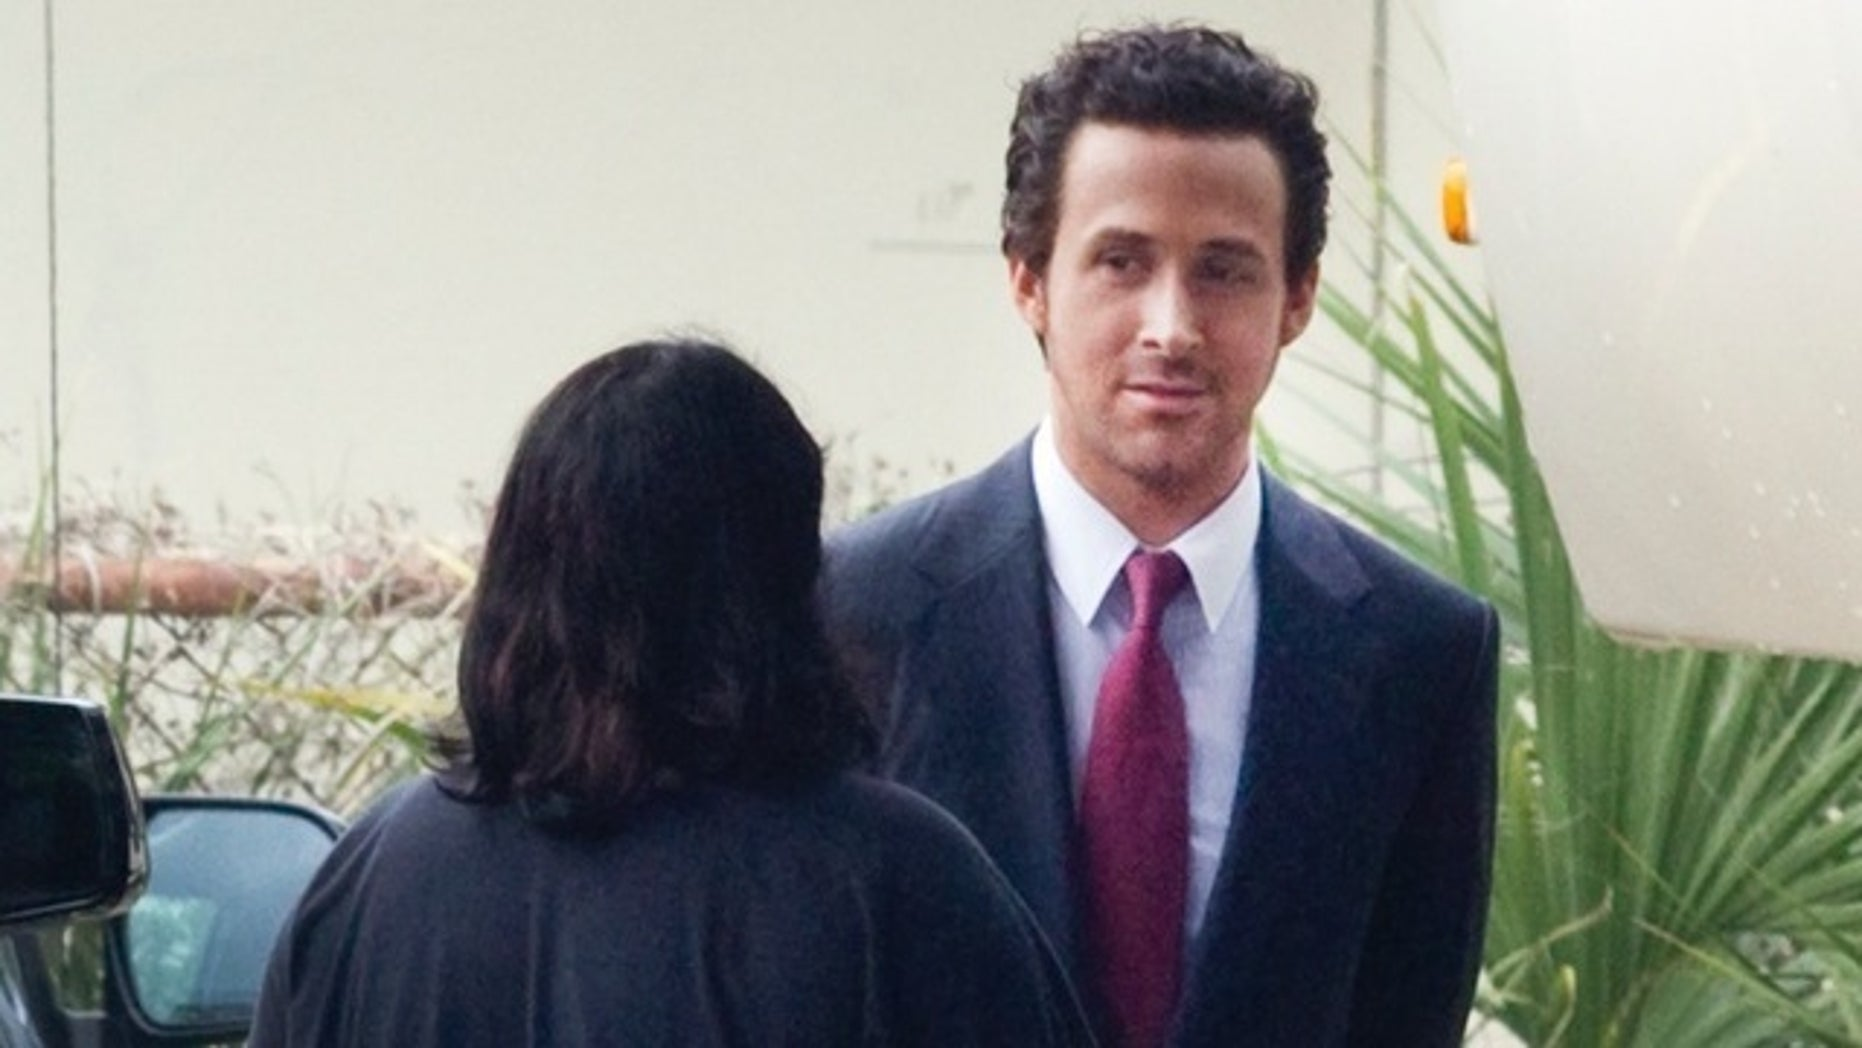 EXCLUSIVE: Ryan Gosling is a dark haired city slicker on set in New Orleans. The actor transformed into a tanned, slick dark haired businessman as he worked on his latest movie The Big Short in New Orleans, which co-stars Brad Pitt, Christian Bale and Steve Carell.